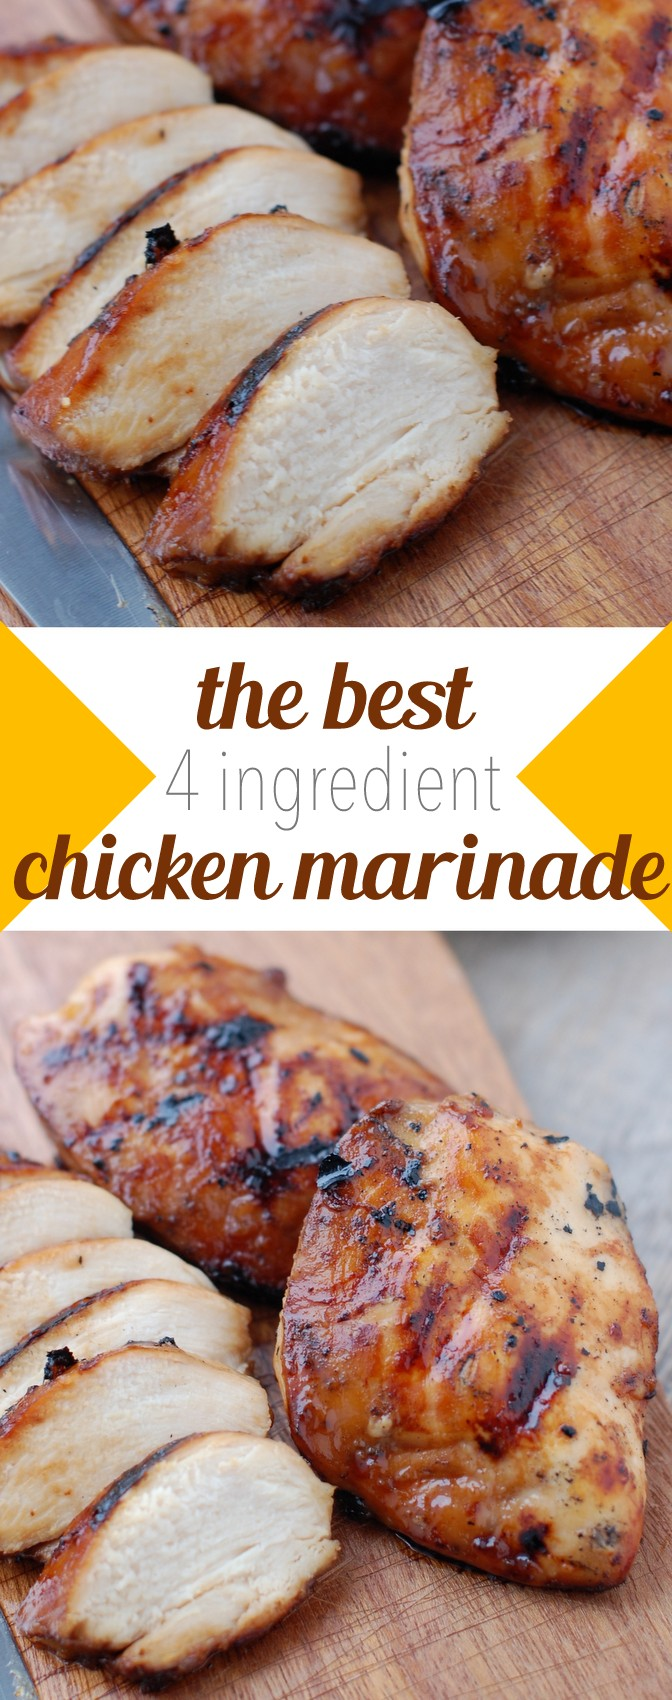 Jan 22, · Combine marinade with chicken in a ziplock freezer bag, and toss until the chicken is evenly coated in the marinade. Carefully press out any extra air that might be in the bag, then seal. (You will need 1/2 cup marinade per 1 pound of chicken.)5/5(4).